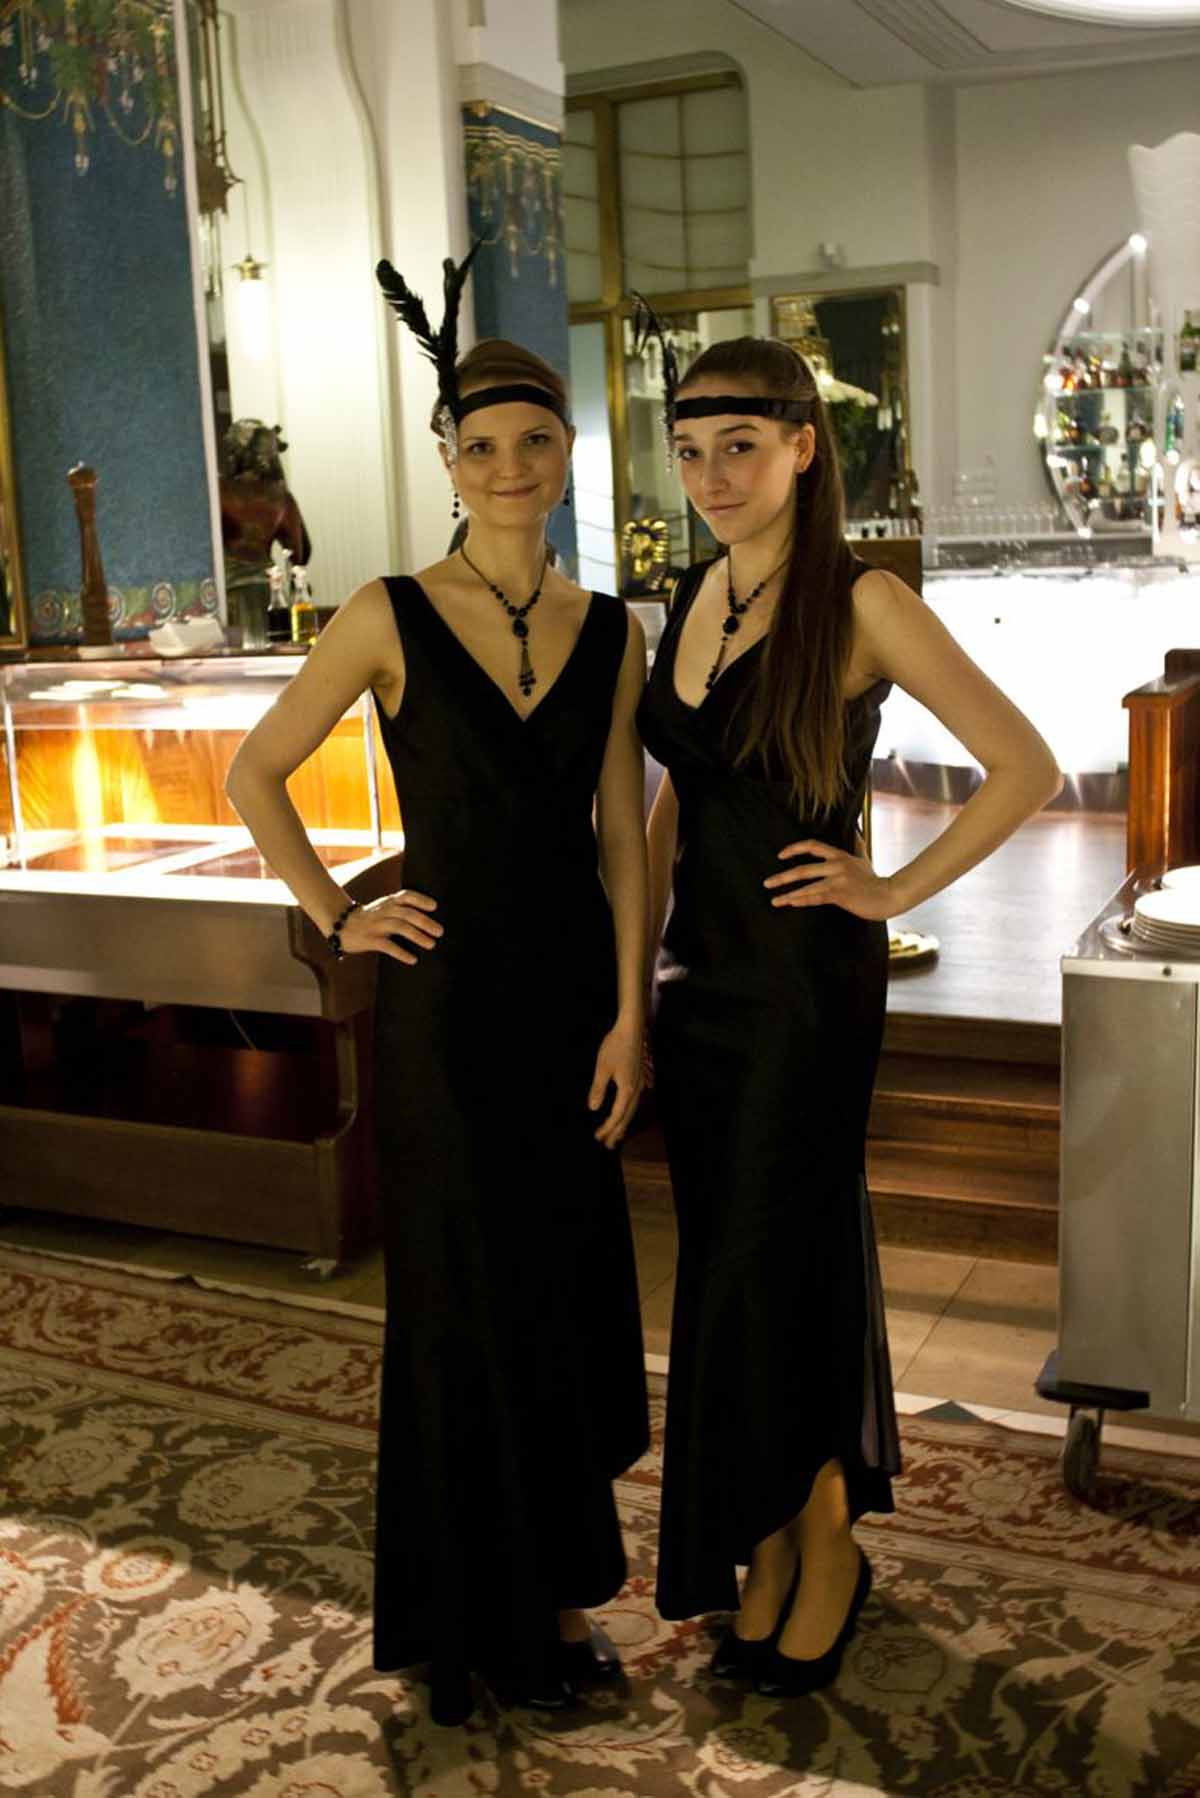 Beautiful hostesses in stylish costumes at Prague gala event managed by Maxin PRAGUE